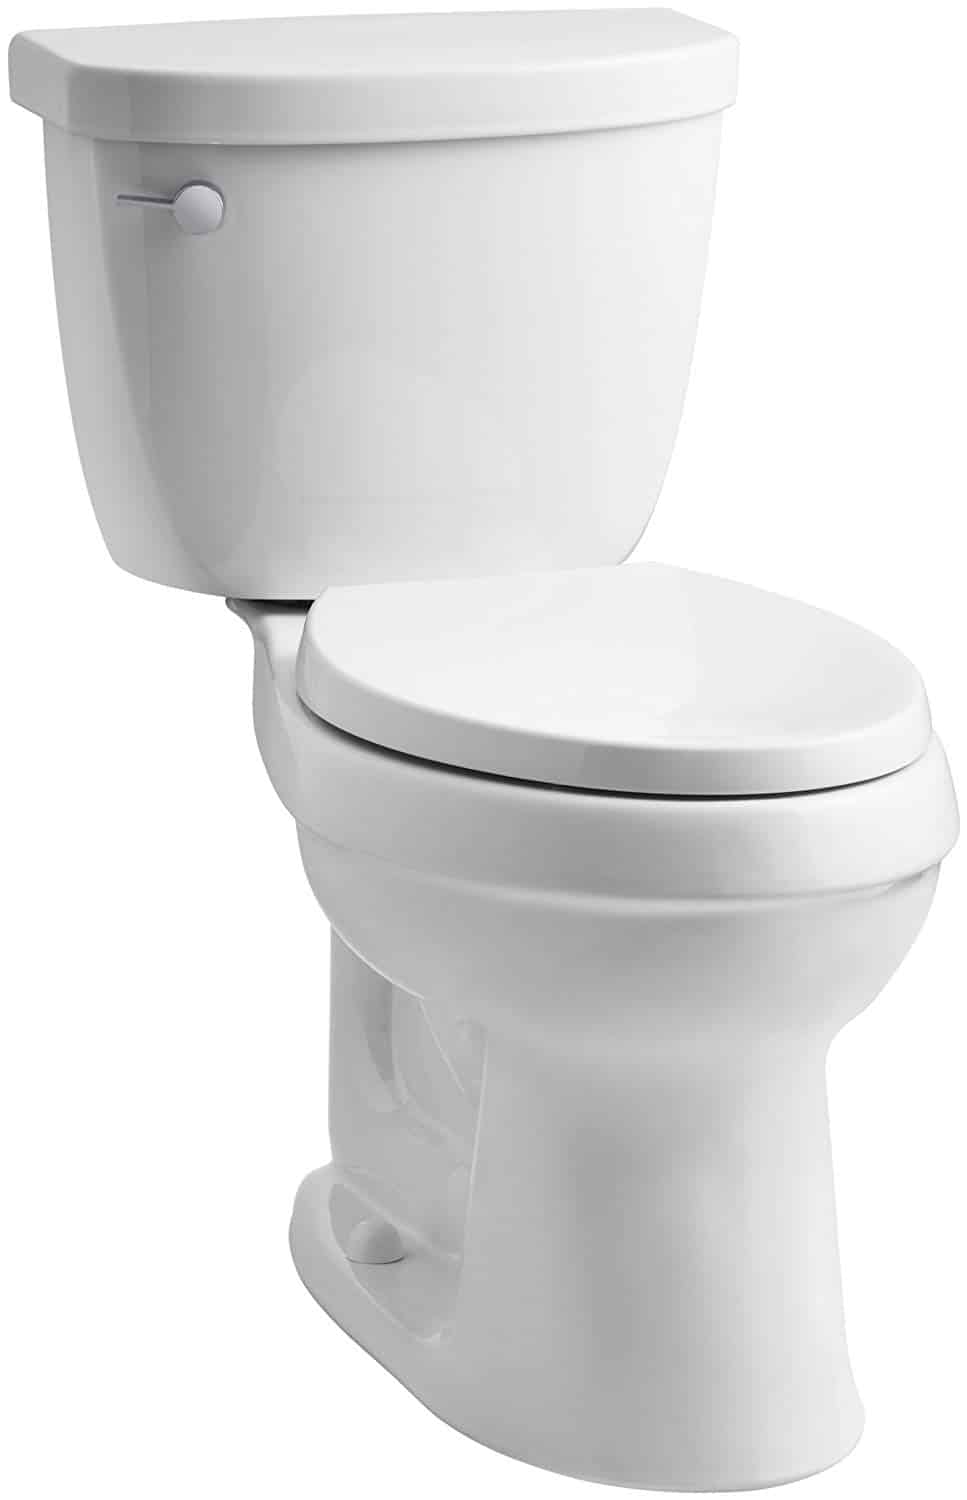 KOHLER Cimarron Comfort Height Elongated 1.28 gpf Toilet with AquaPiston Technology, Less Seat